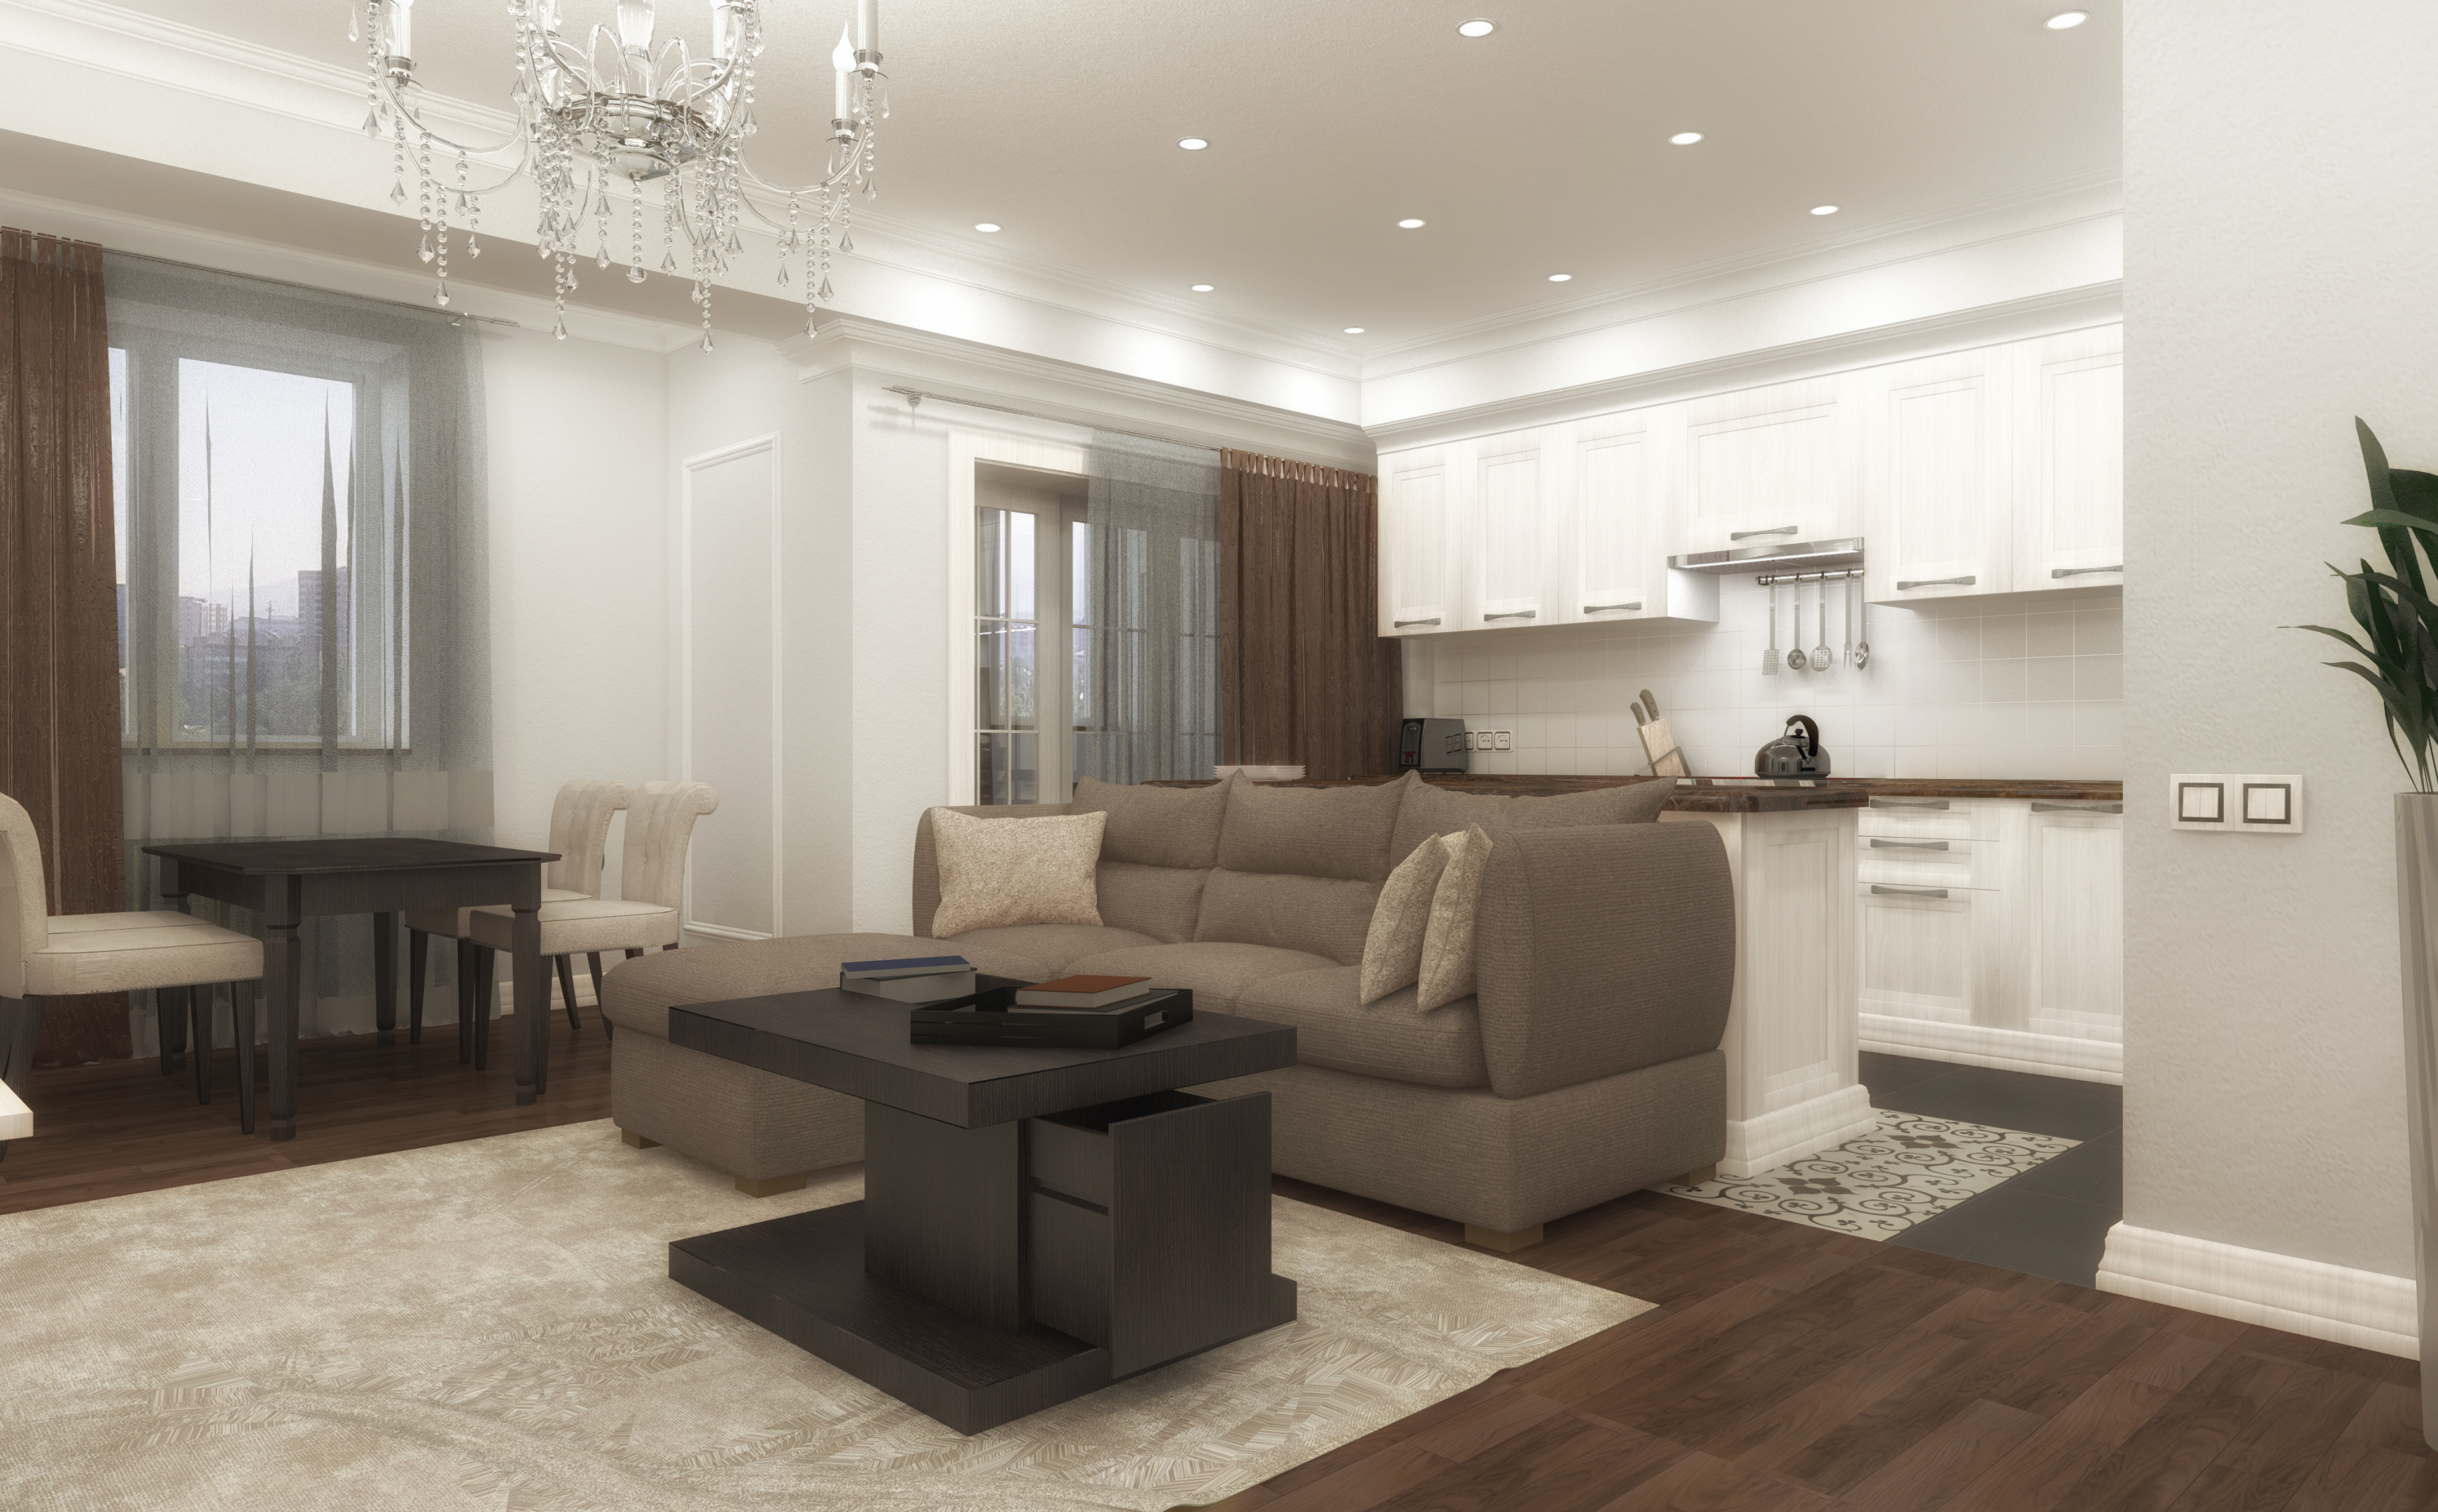 Interior design project LCD Spring, Almaty in ArchiCAD maxwell render image